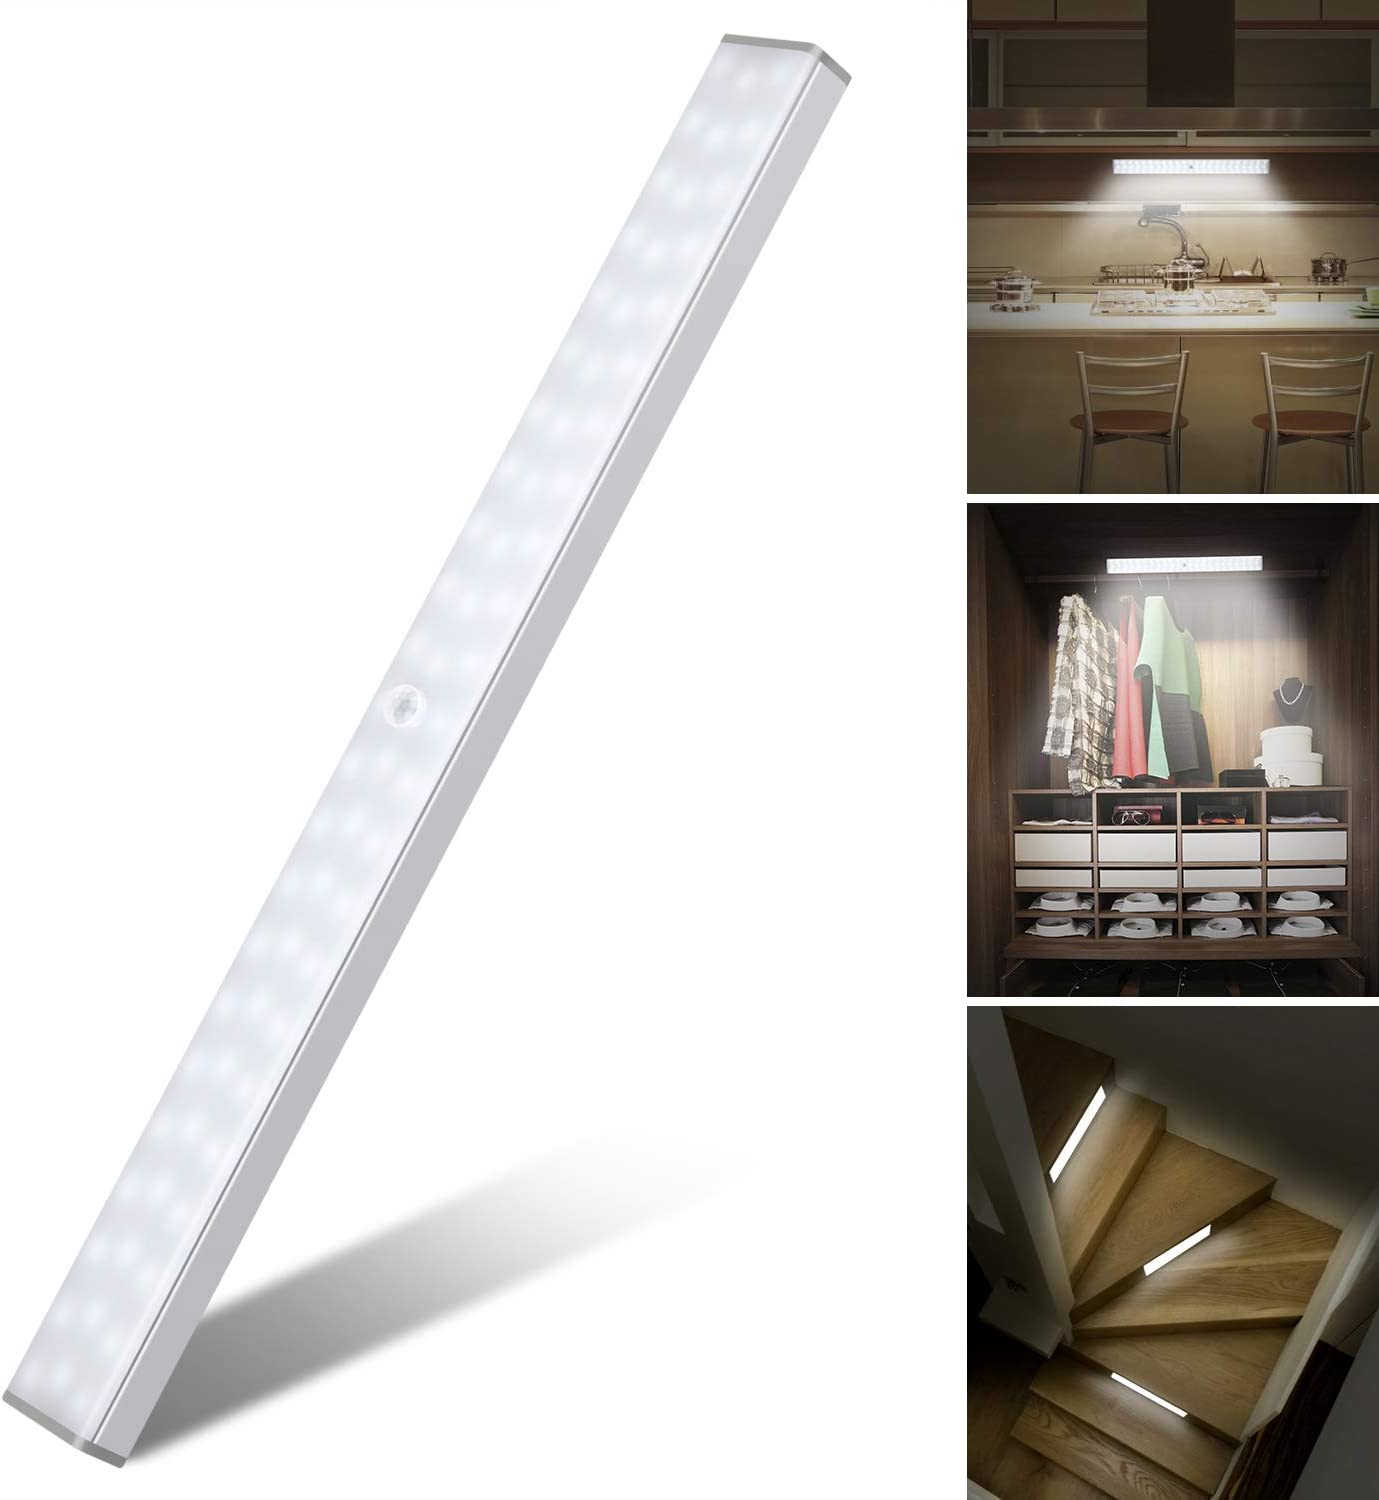 LED Closet Light, Under Cabinet Lighting Rechargeable Wireless Motion Sensor Closet Light for Wardrobe, Kitchen and Stairs, Closet, Under Cabinet, Hallway with Magnetic Strip